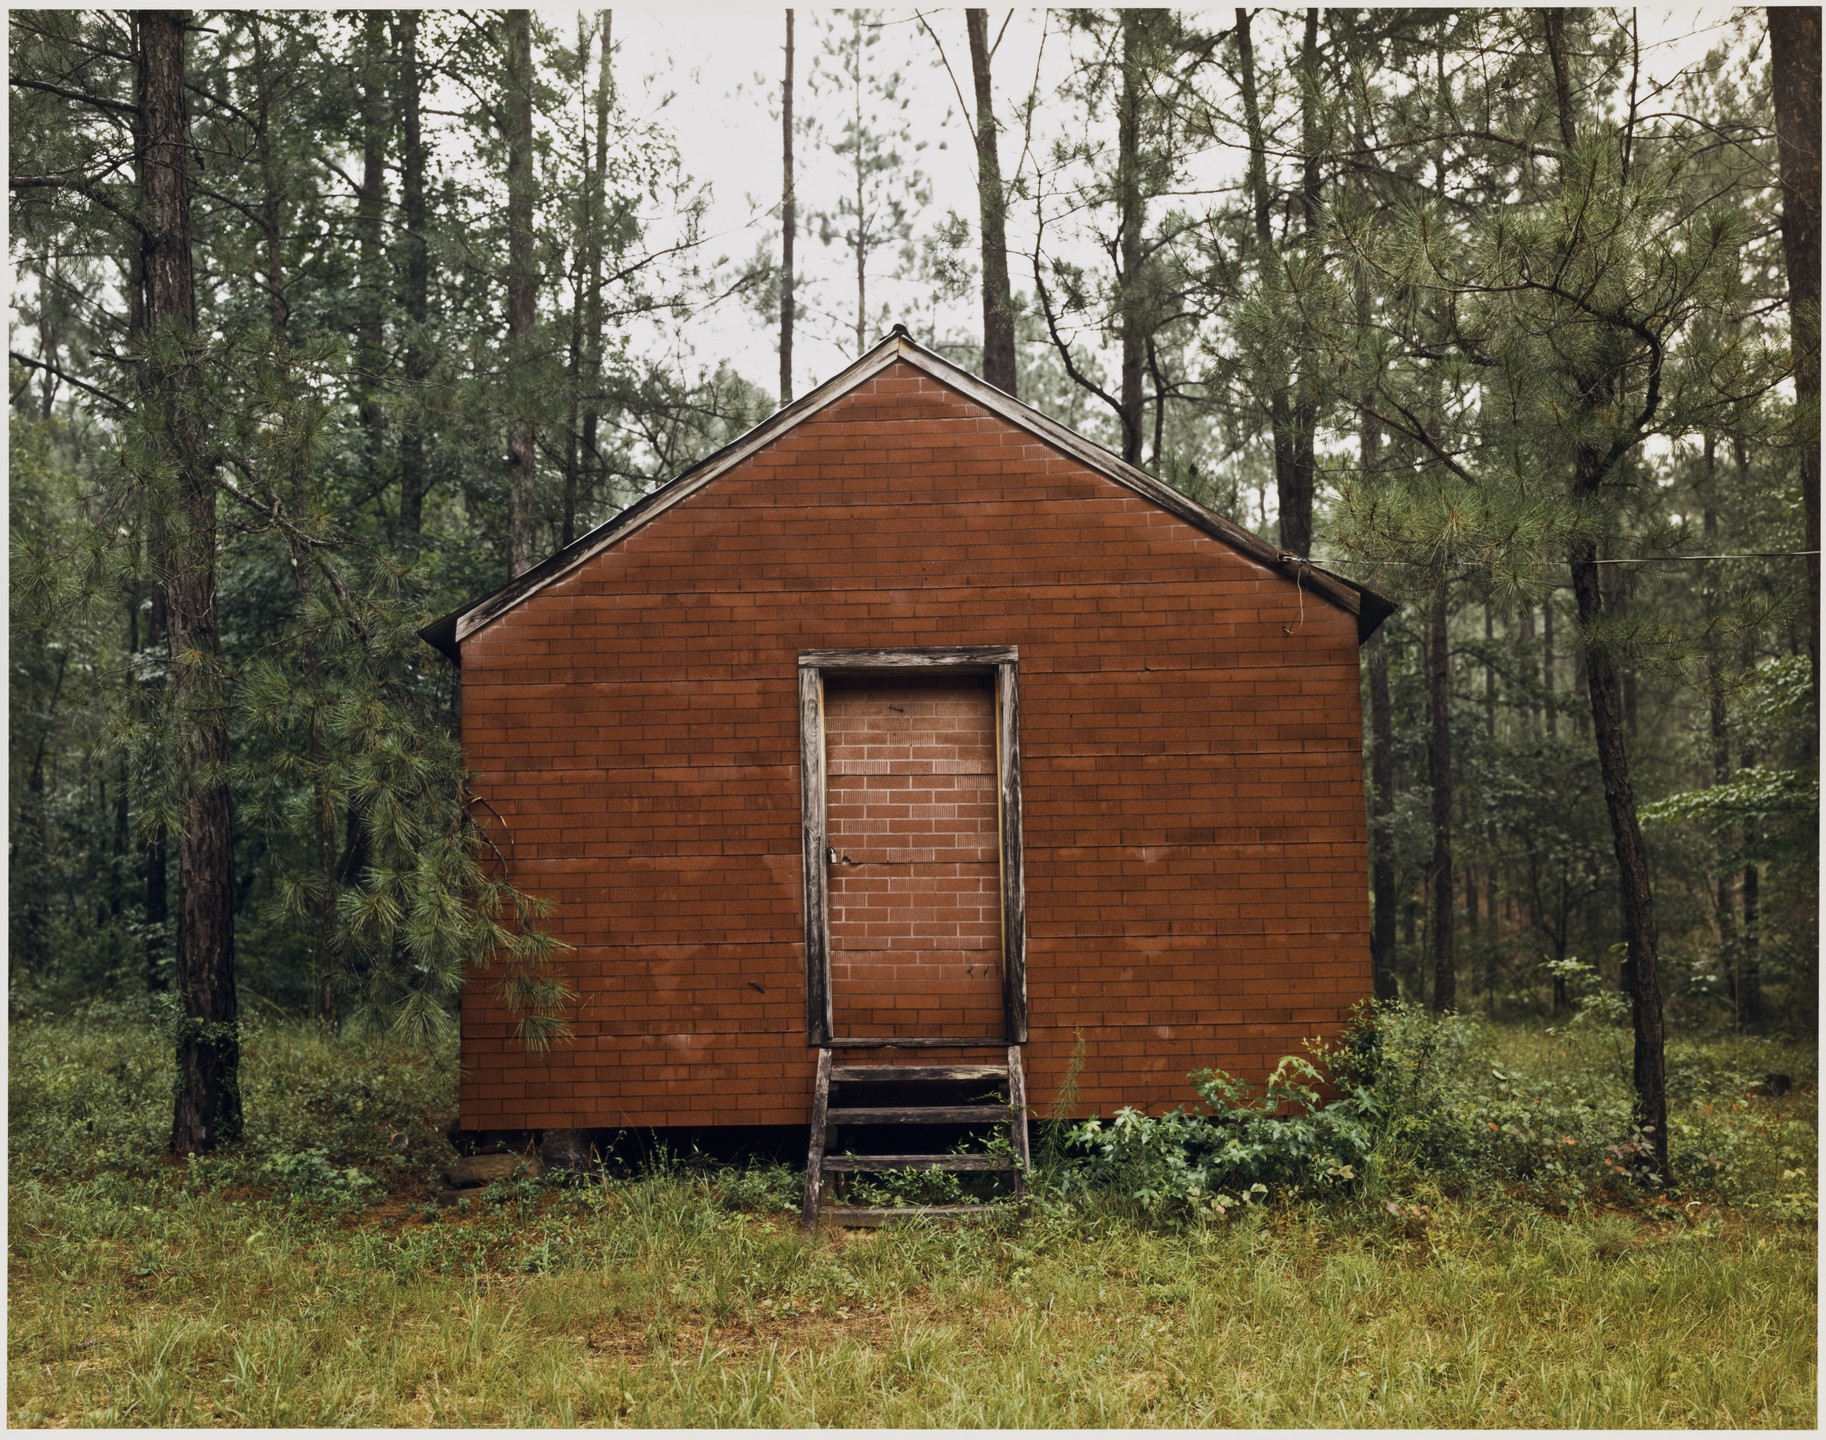 William Christenberry. Red Building in Forest, Hale County, Alabama. 1983